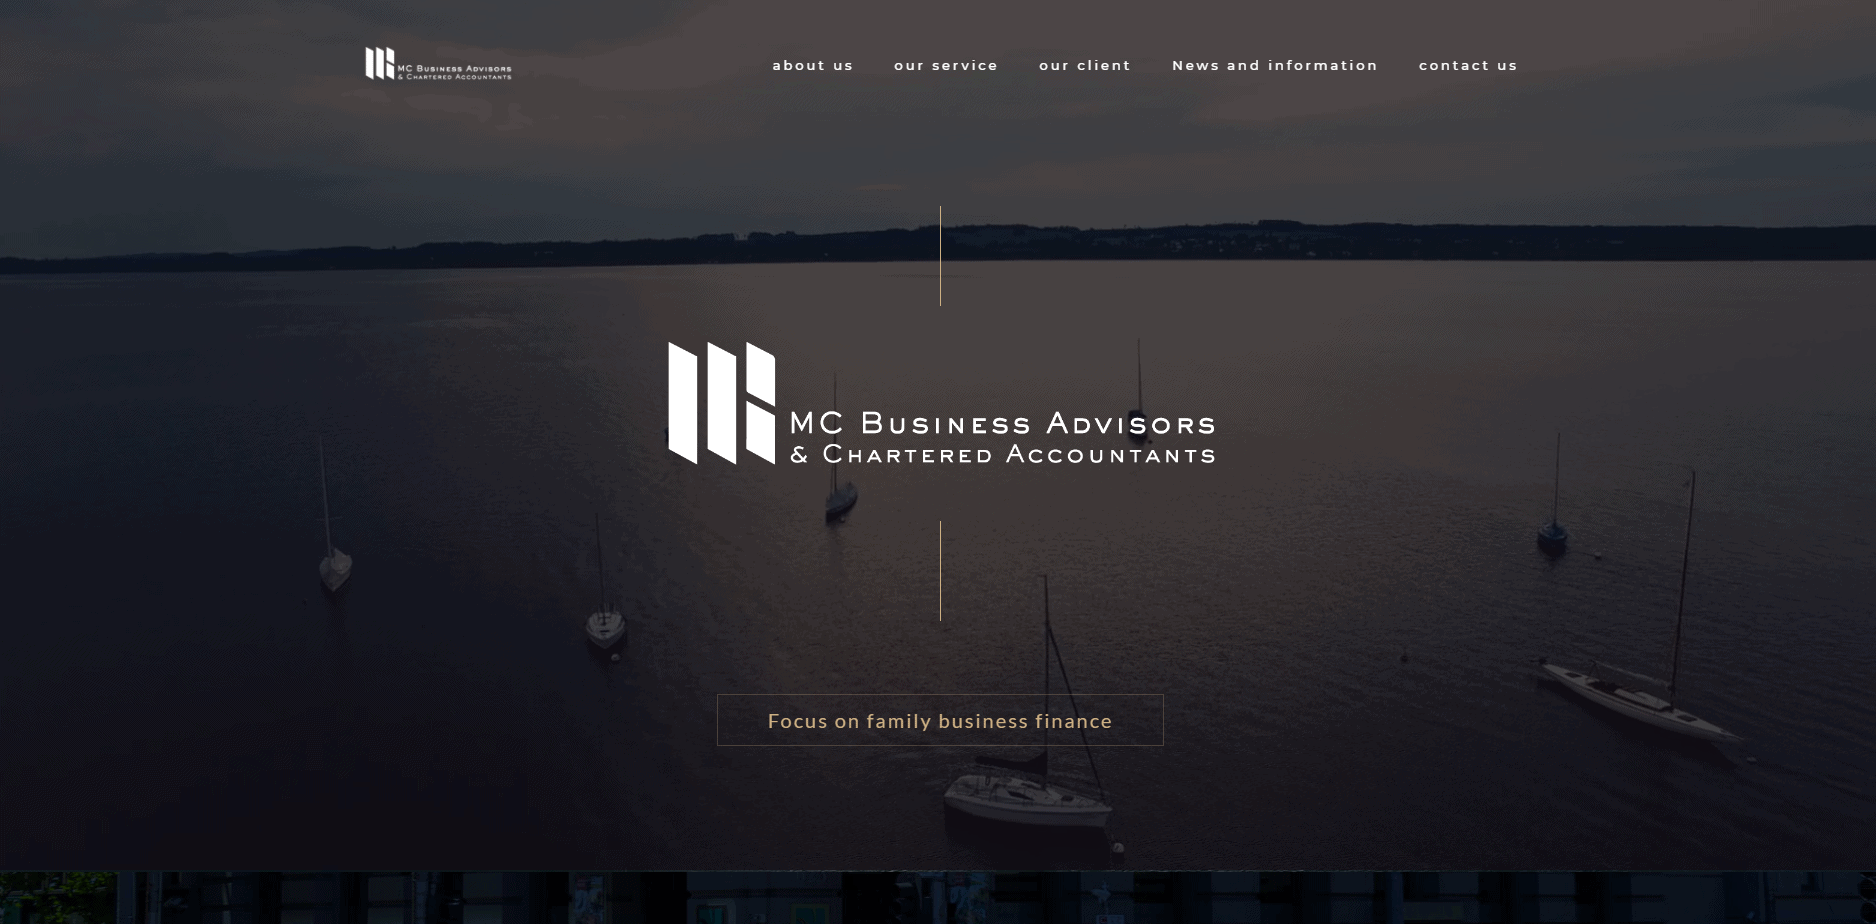 Mc Business Advisors